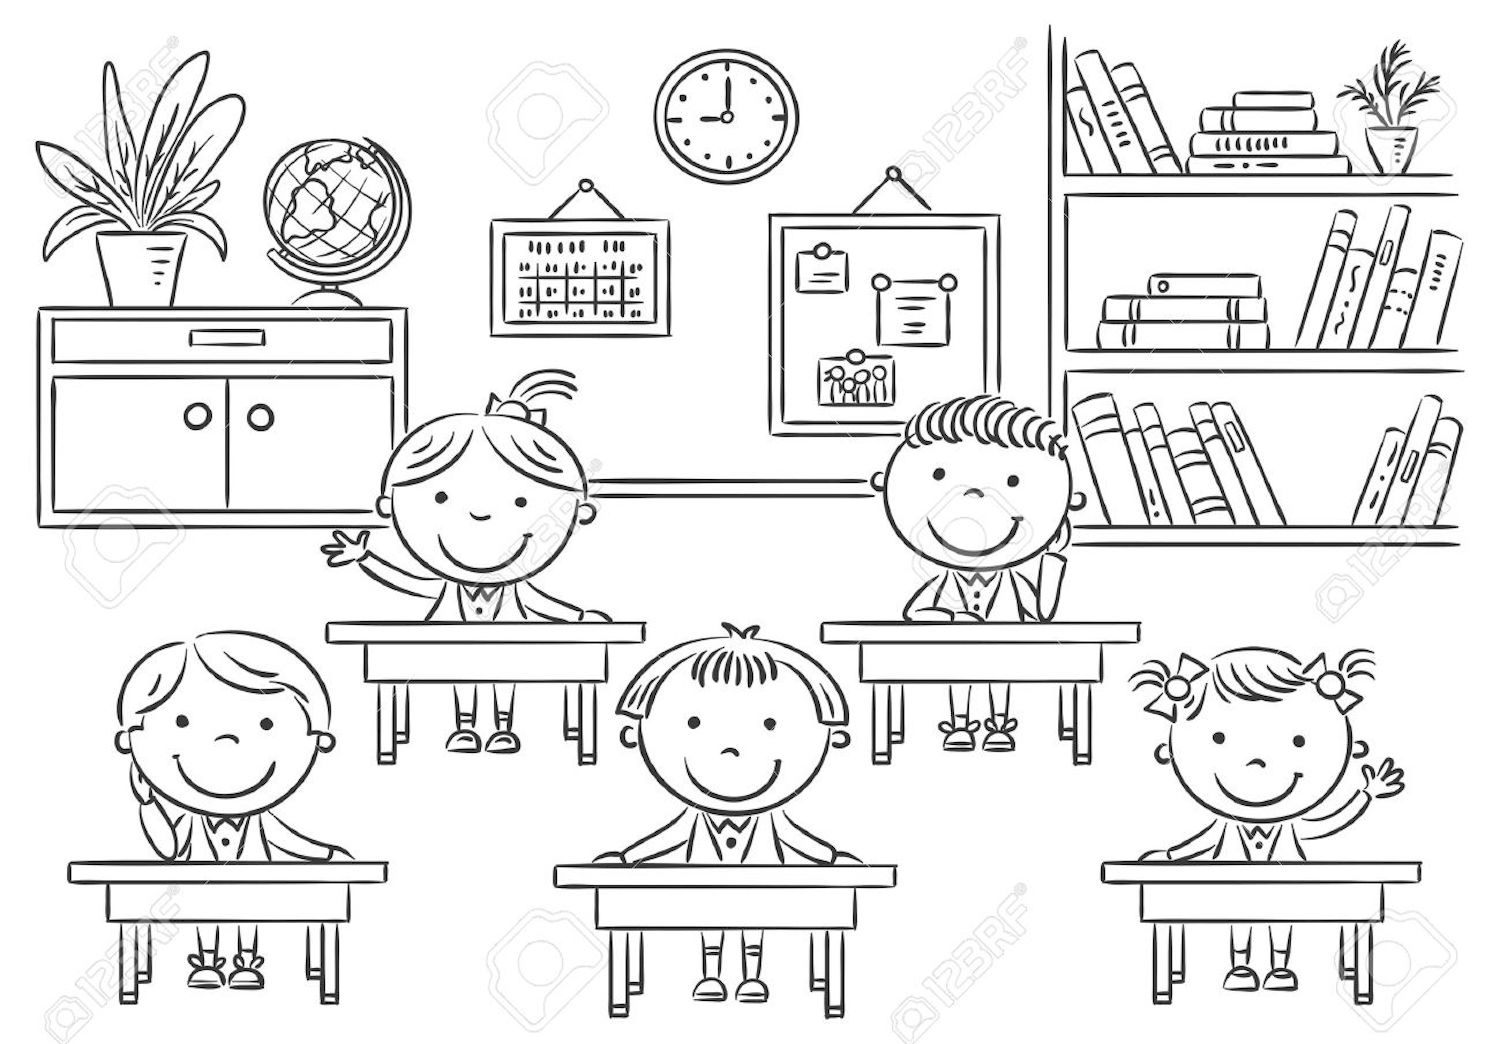 student coloring clipart coloring classroom with pupils stock vector illustration coloring student clipart